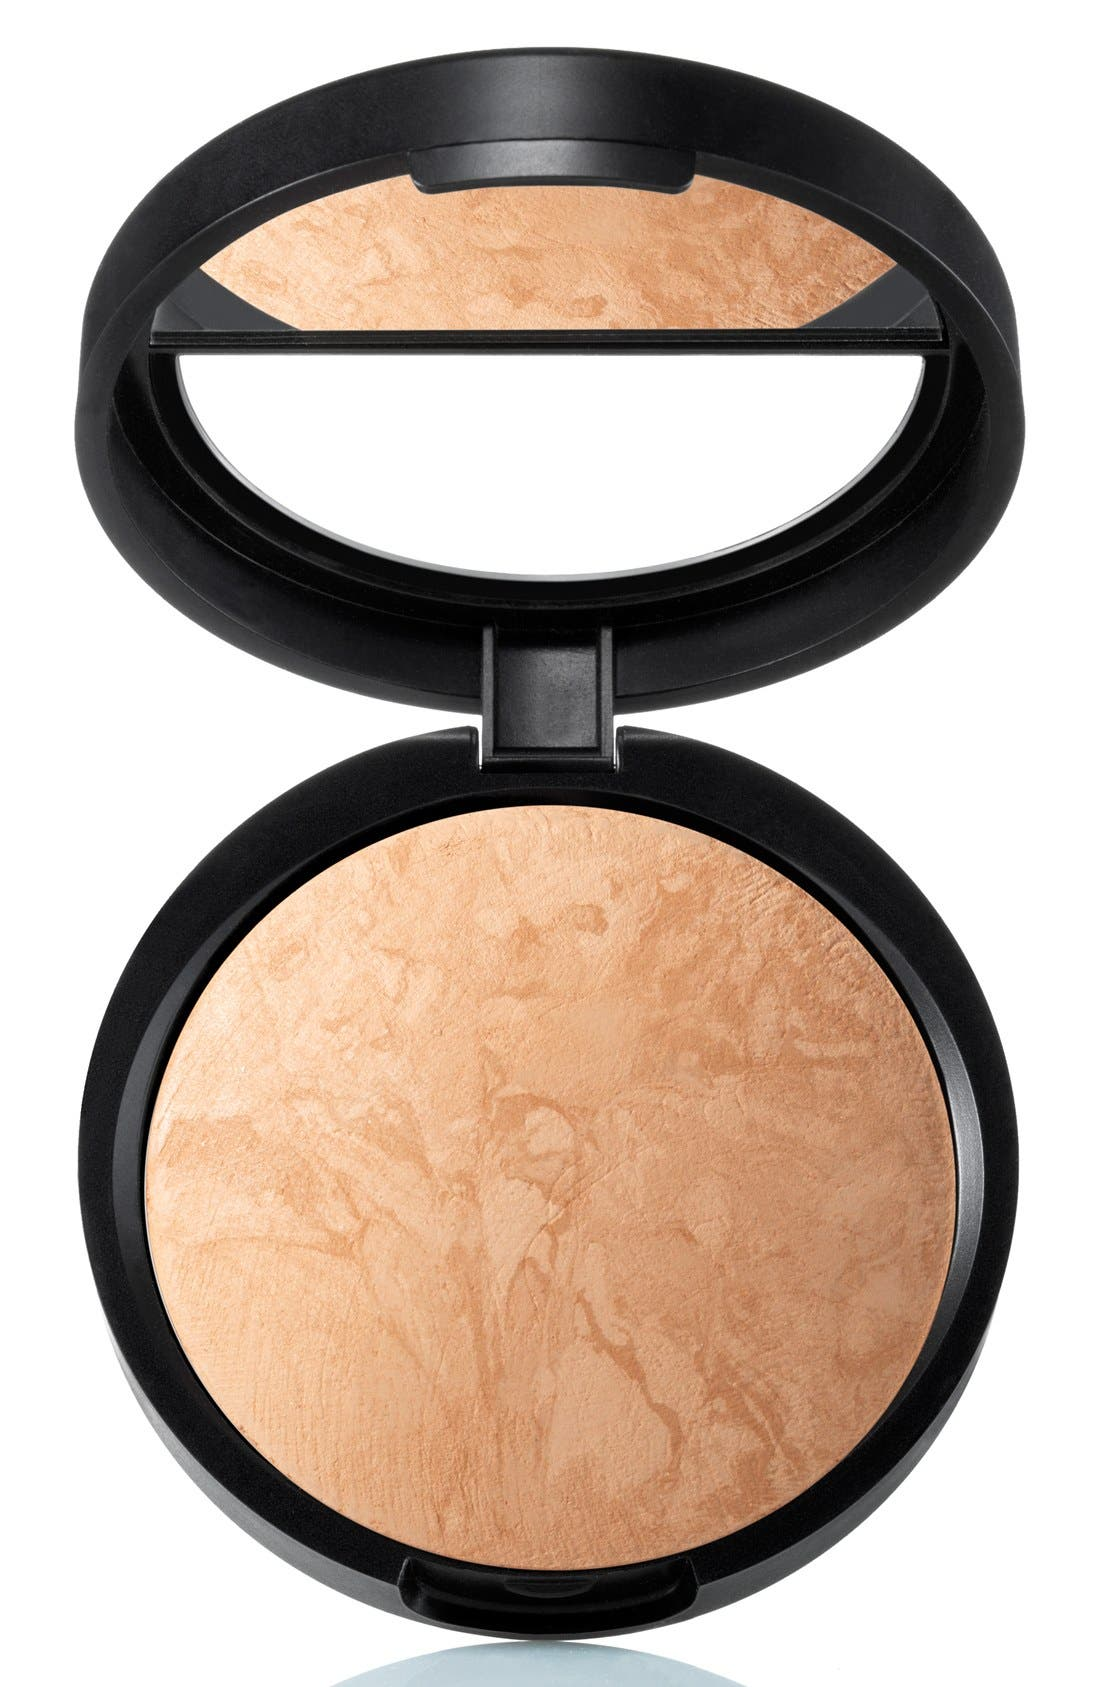 Laura Geller Beauty 'Balance-n-Brighten' Baked Color Correcting Foundation